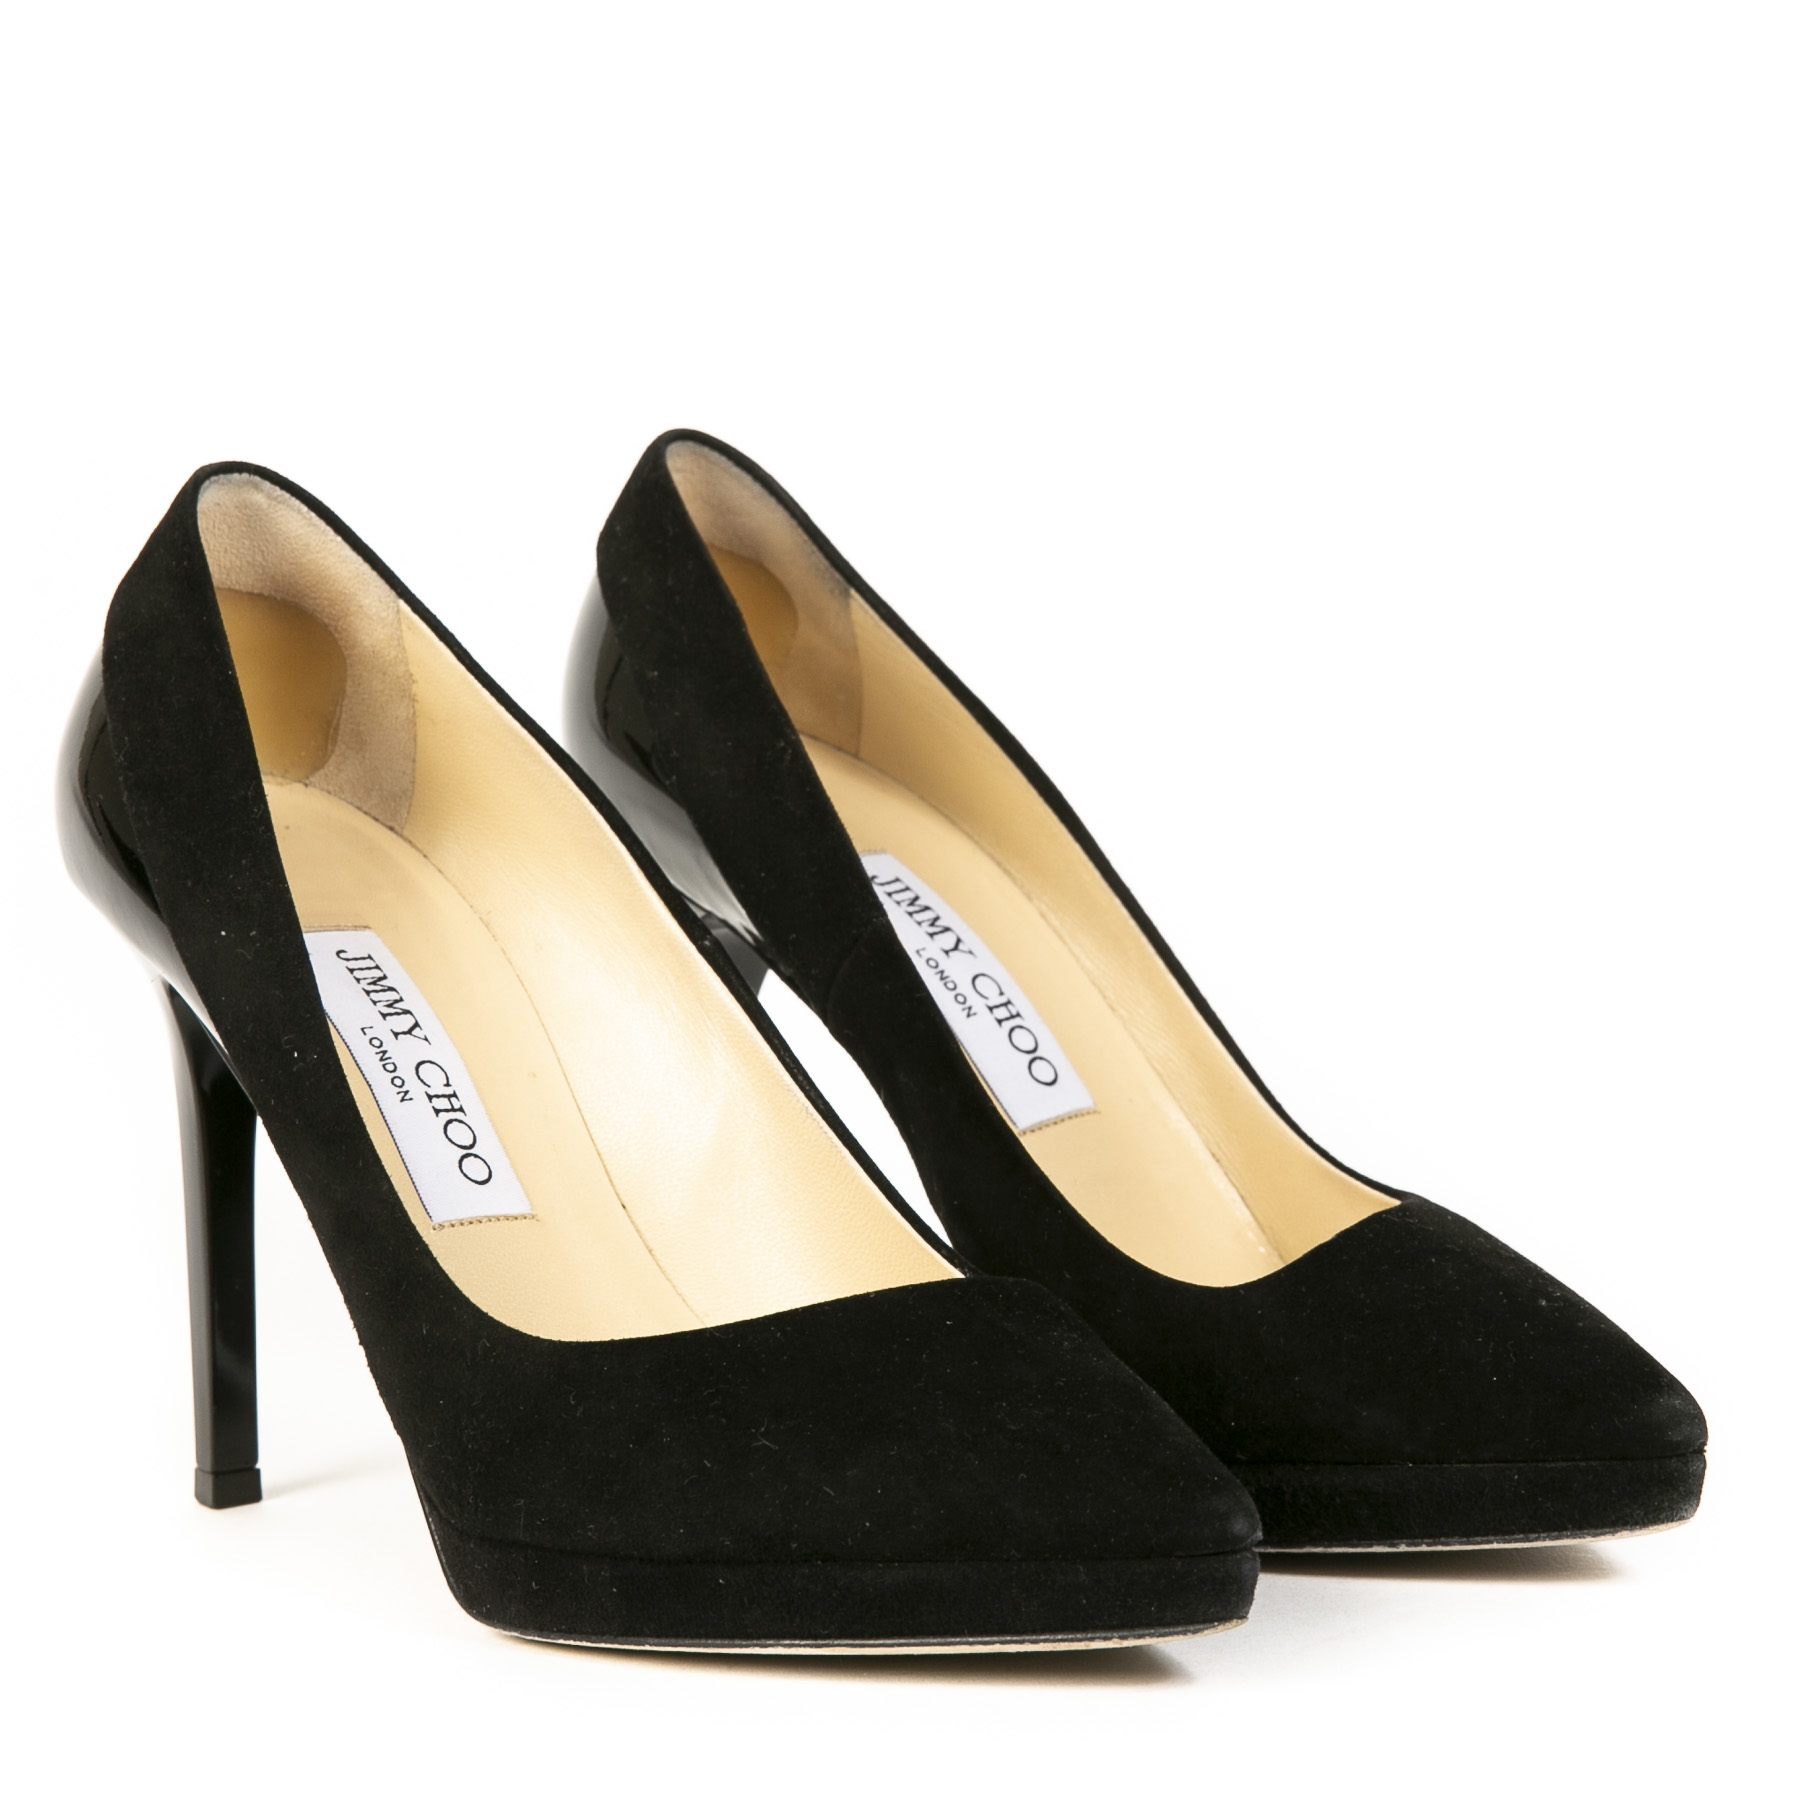 Jimmy Choo Black Suede Pumps - Size 36,5